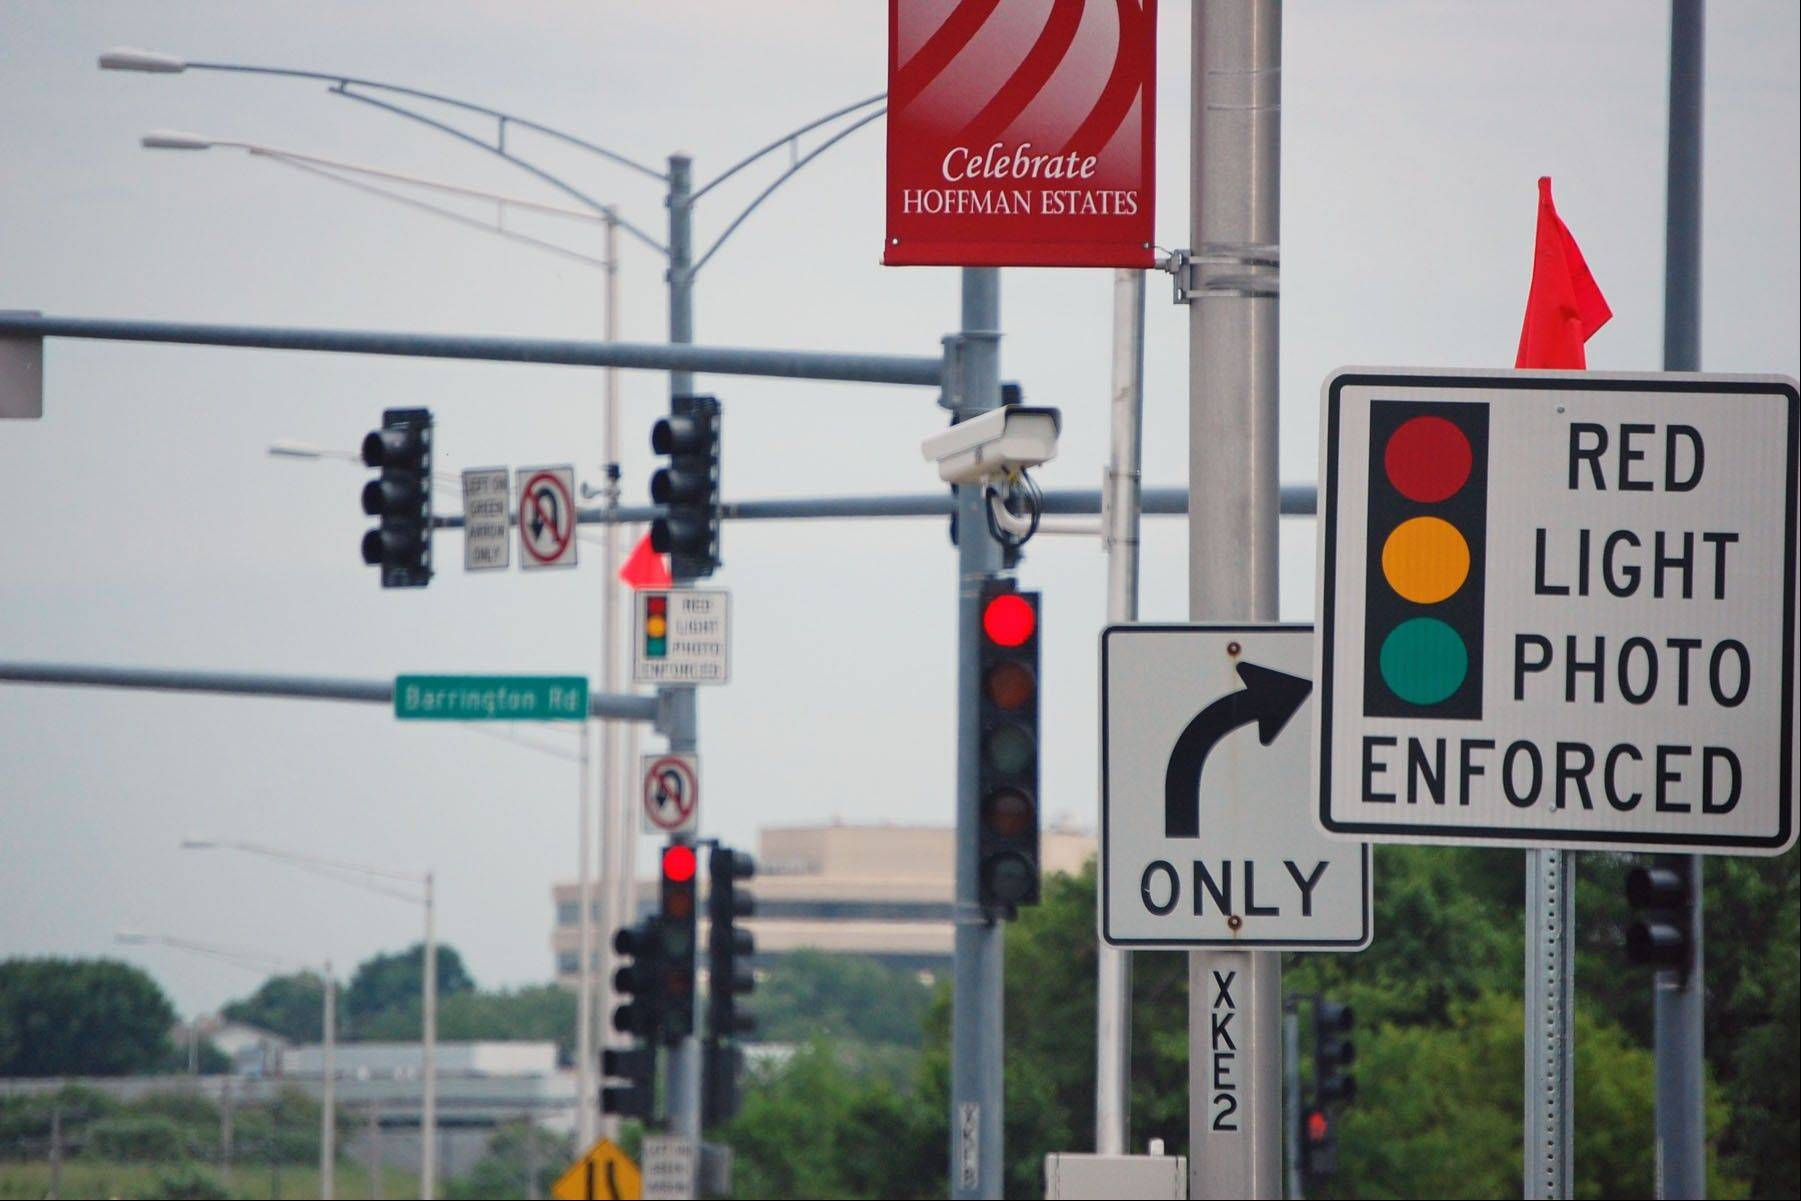 Hoffman Estates will begin ticketing for red-light violations